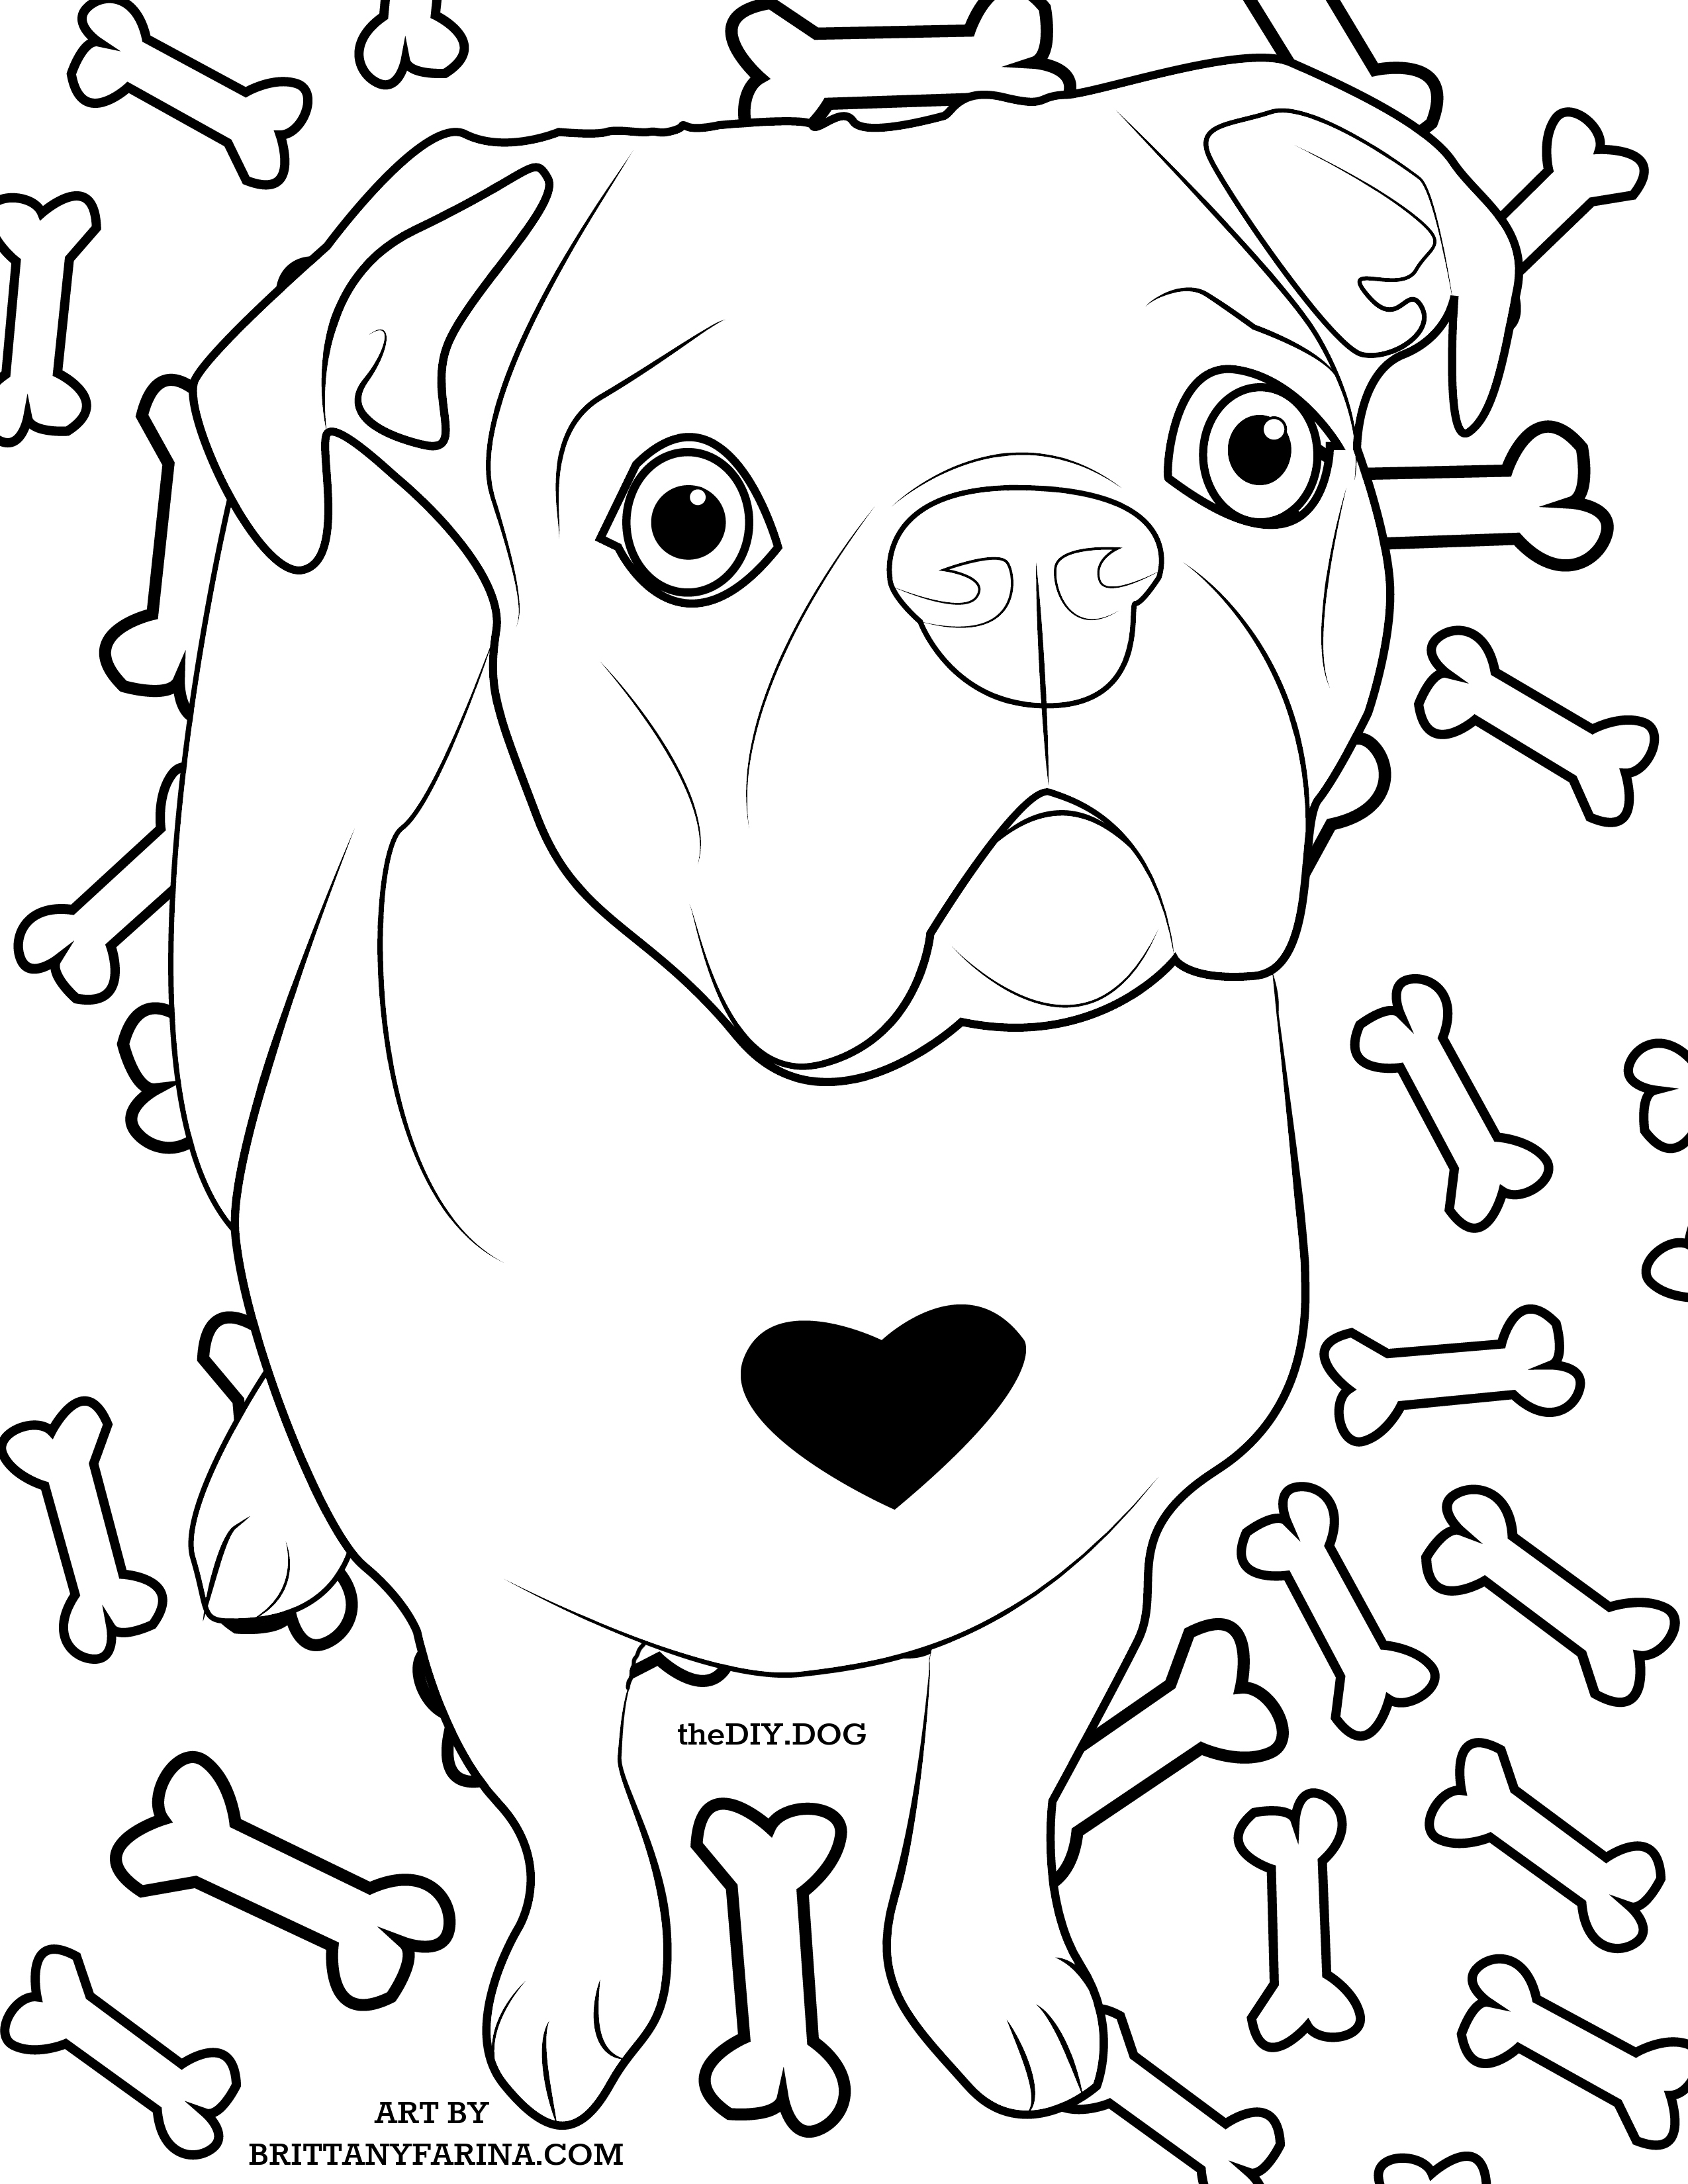 How To Turn Your Dog Into a Coloring Page - Kol's Notes